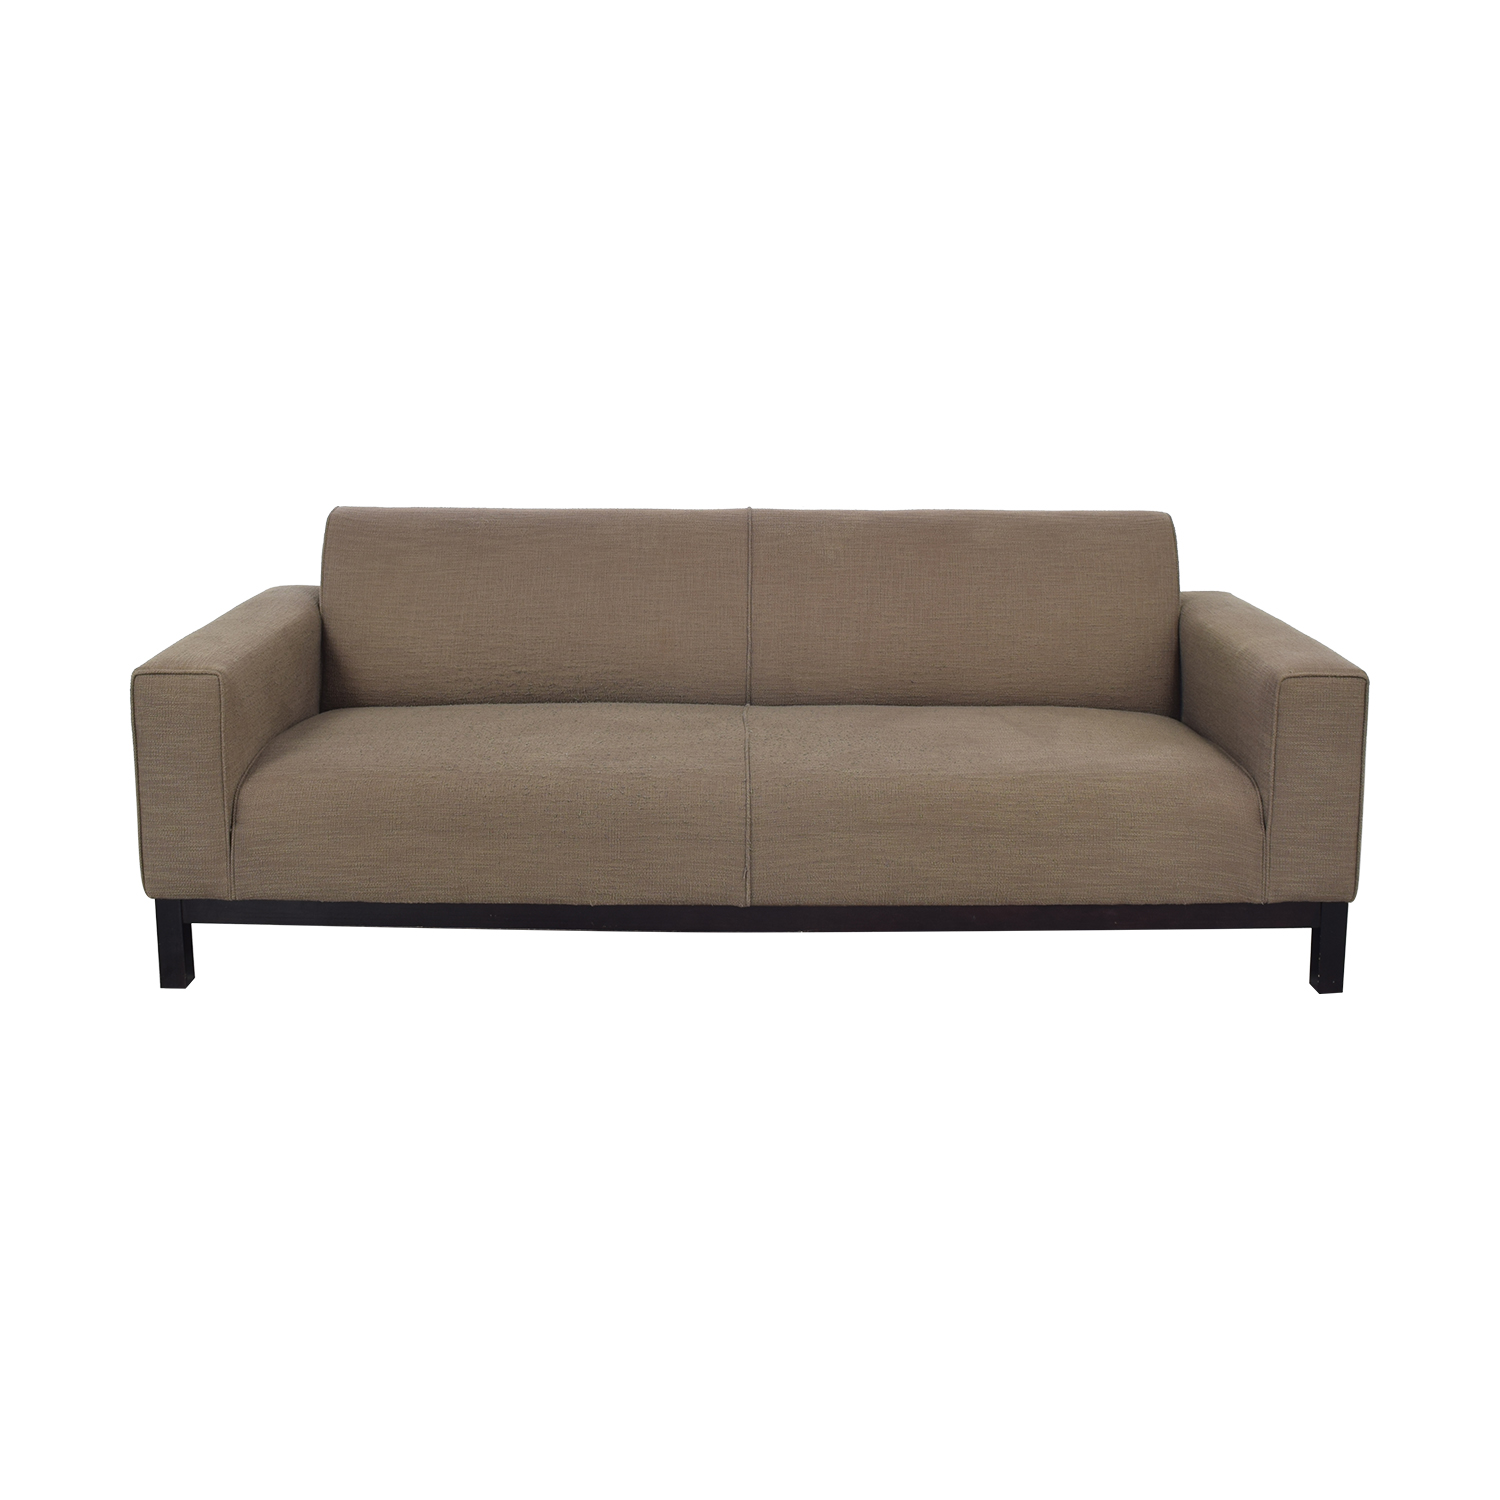 shop Crate & Barrel Tight Back Sofa Crate & Barrel Sofas